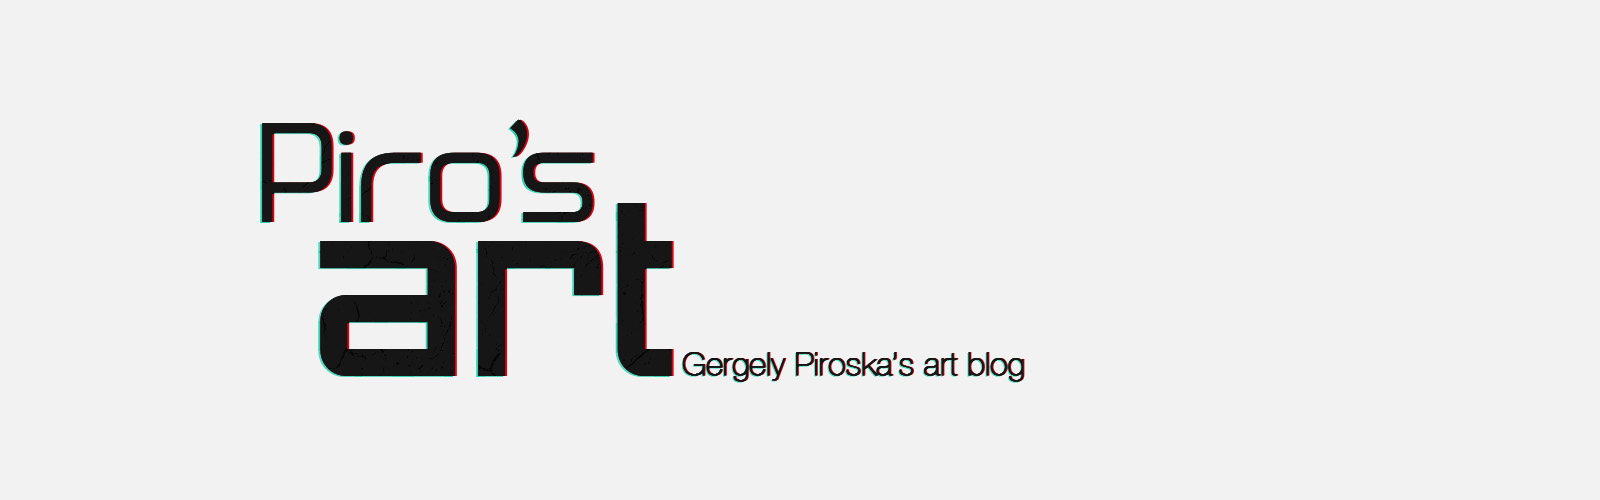 Piro's Art blog